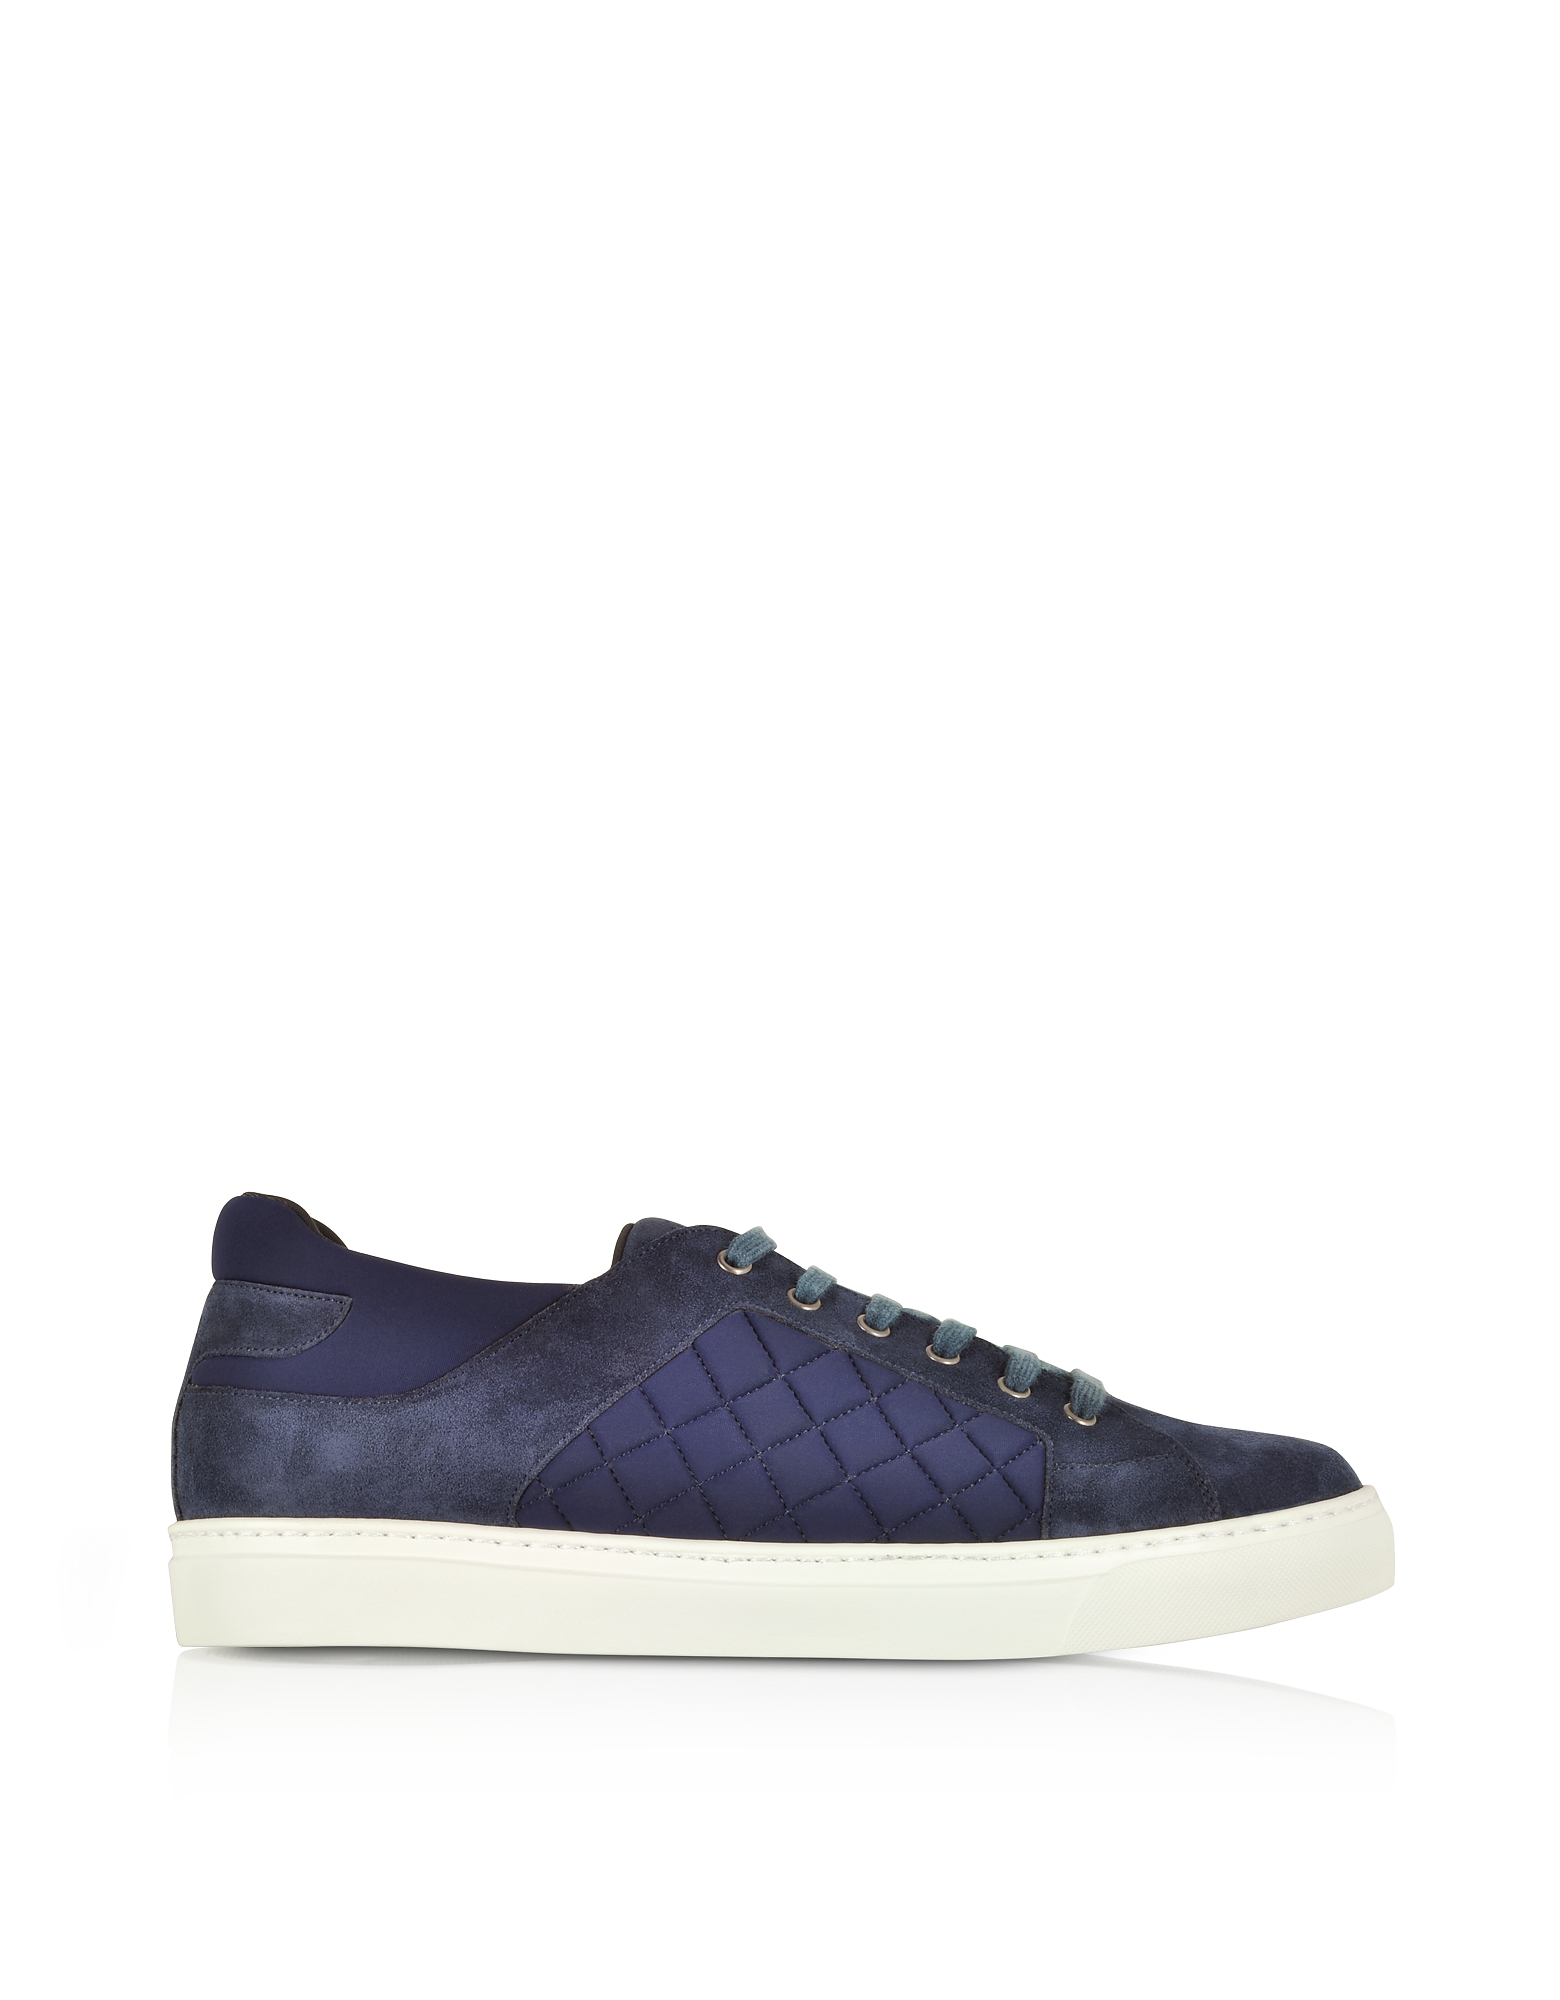 Fratelli Borgioli Shoes, Navy Blue Suede and Quilted Nylon Men's Sneakers